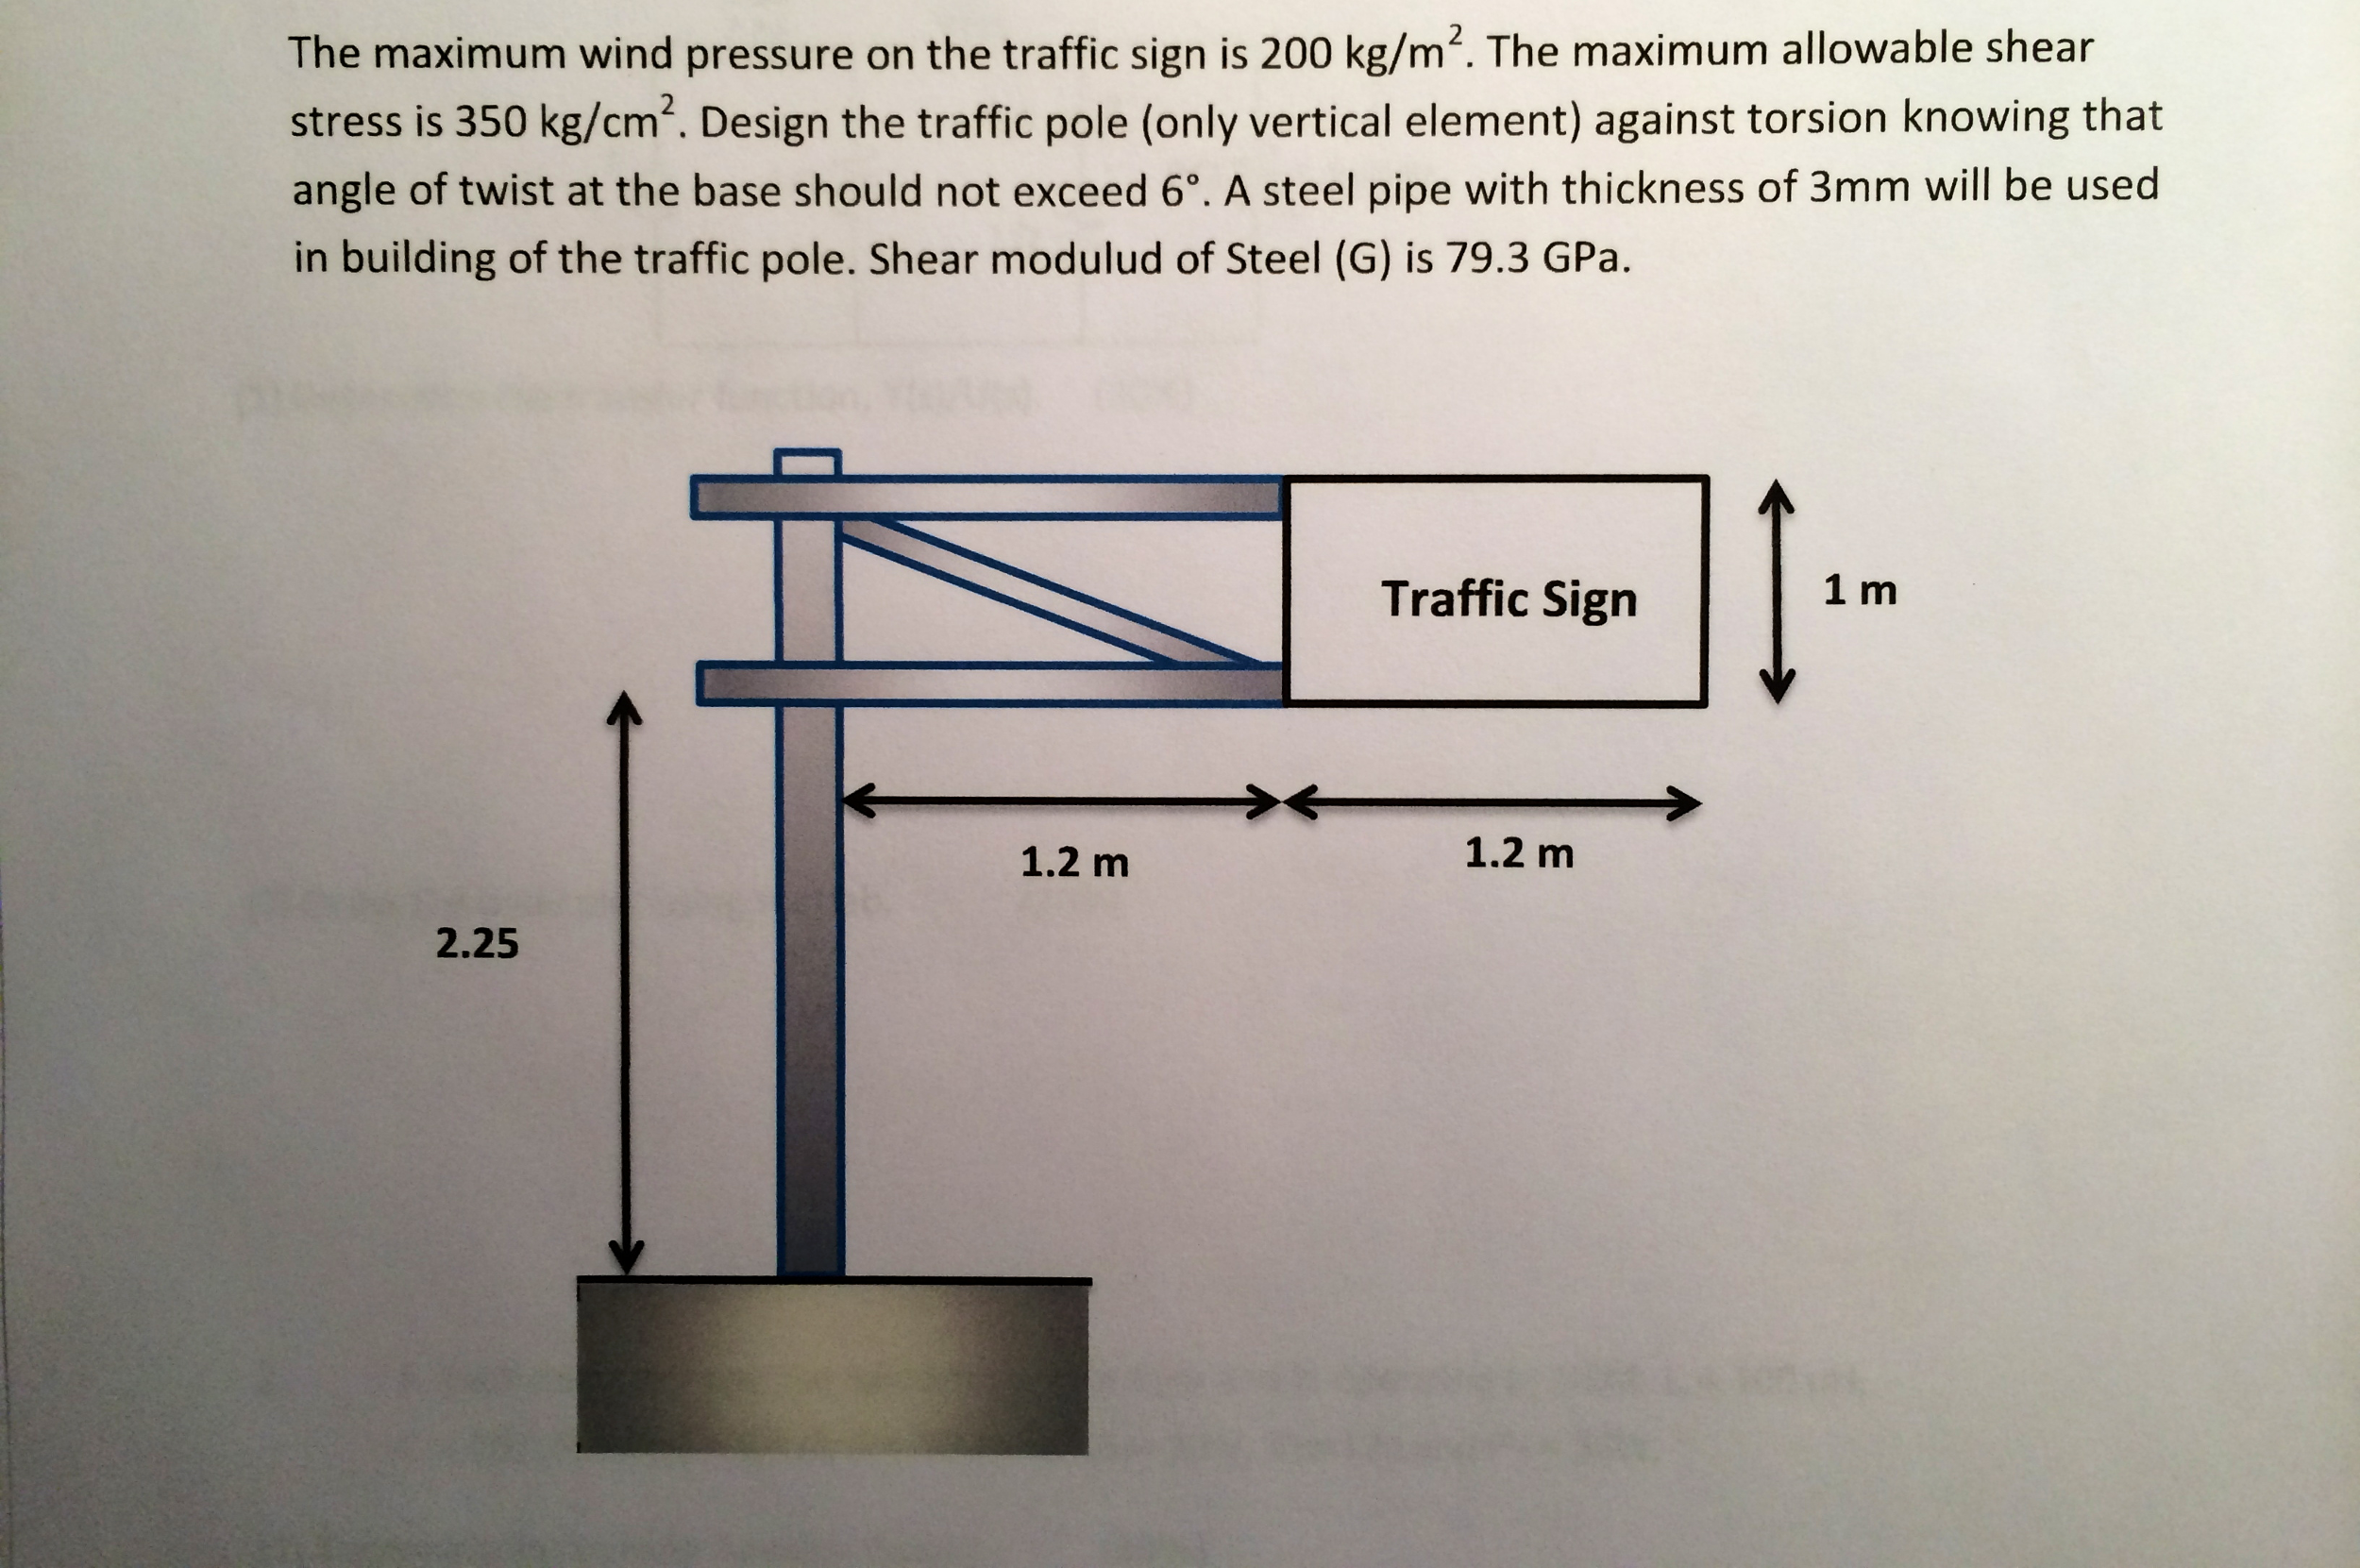 The maximum wind pressure on the traffic sign is 2